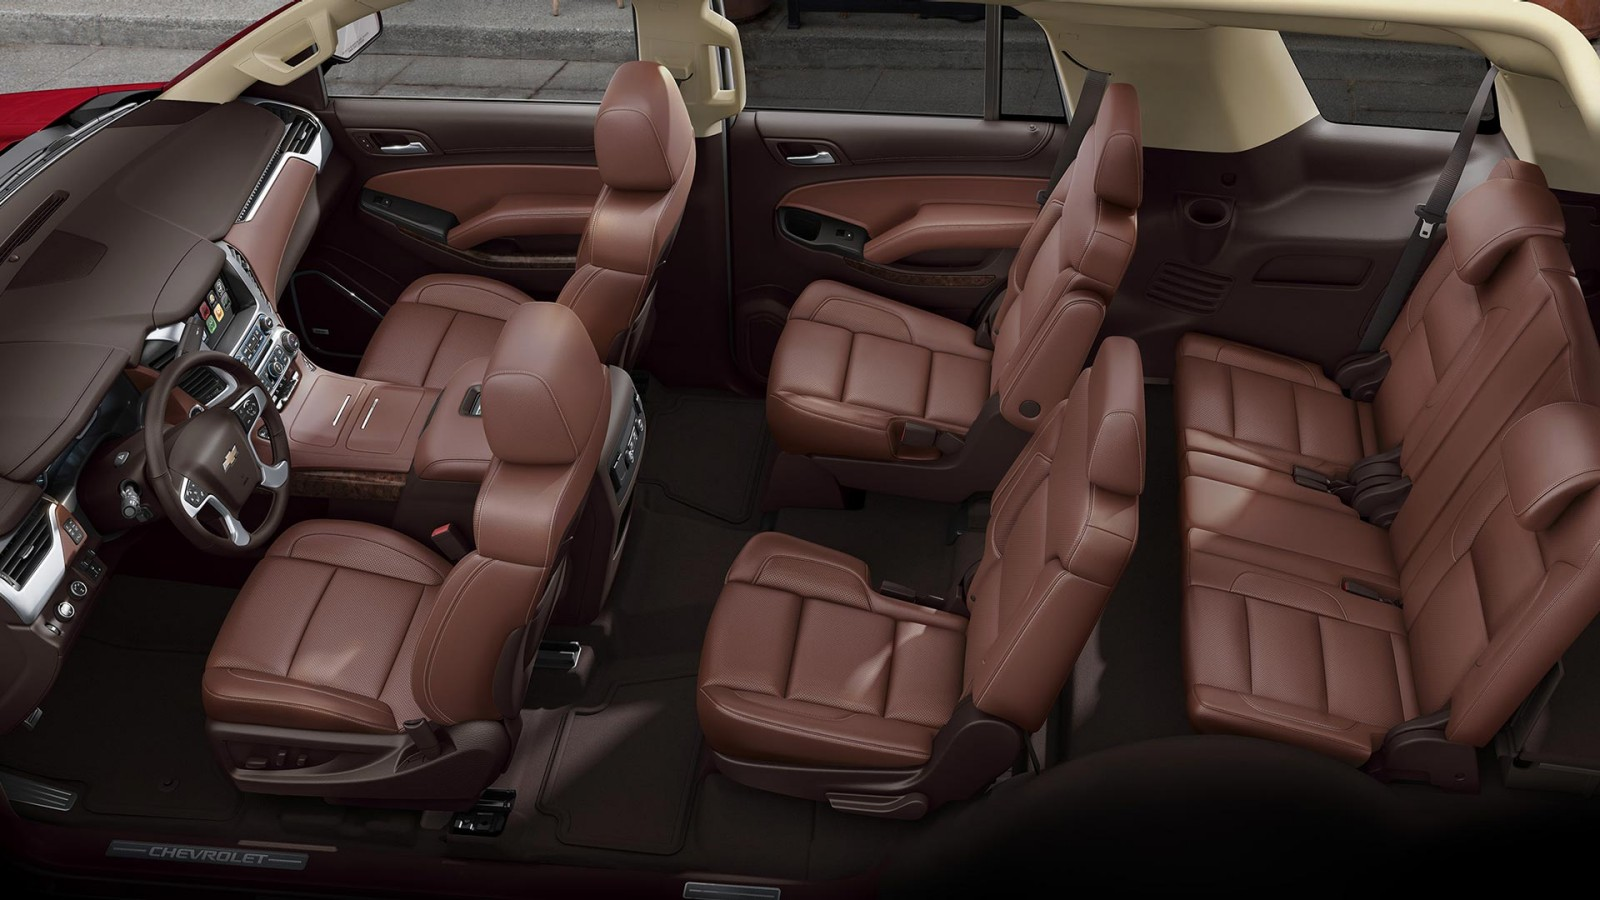 A birds-eye-view of the interior of the 2017 Chevy Tahoe with red leather and brown trim, as seen in the highest trim level.